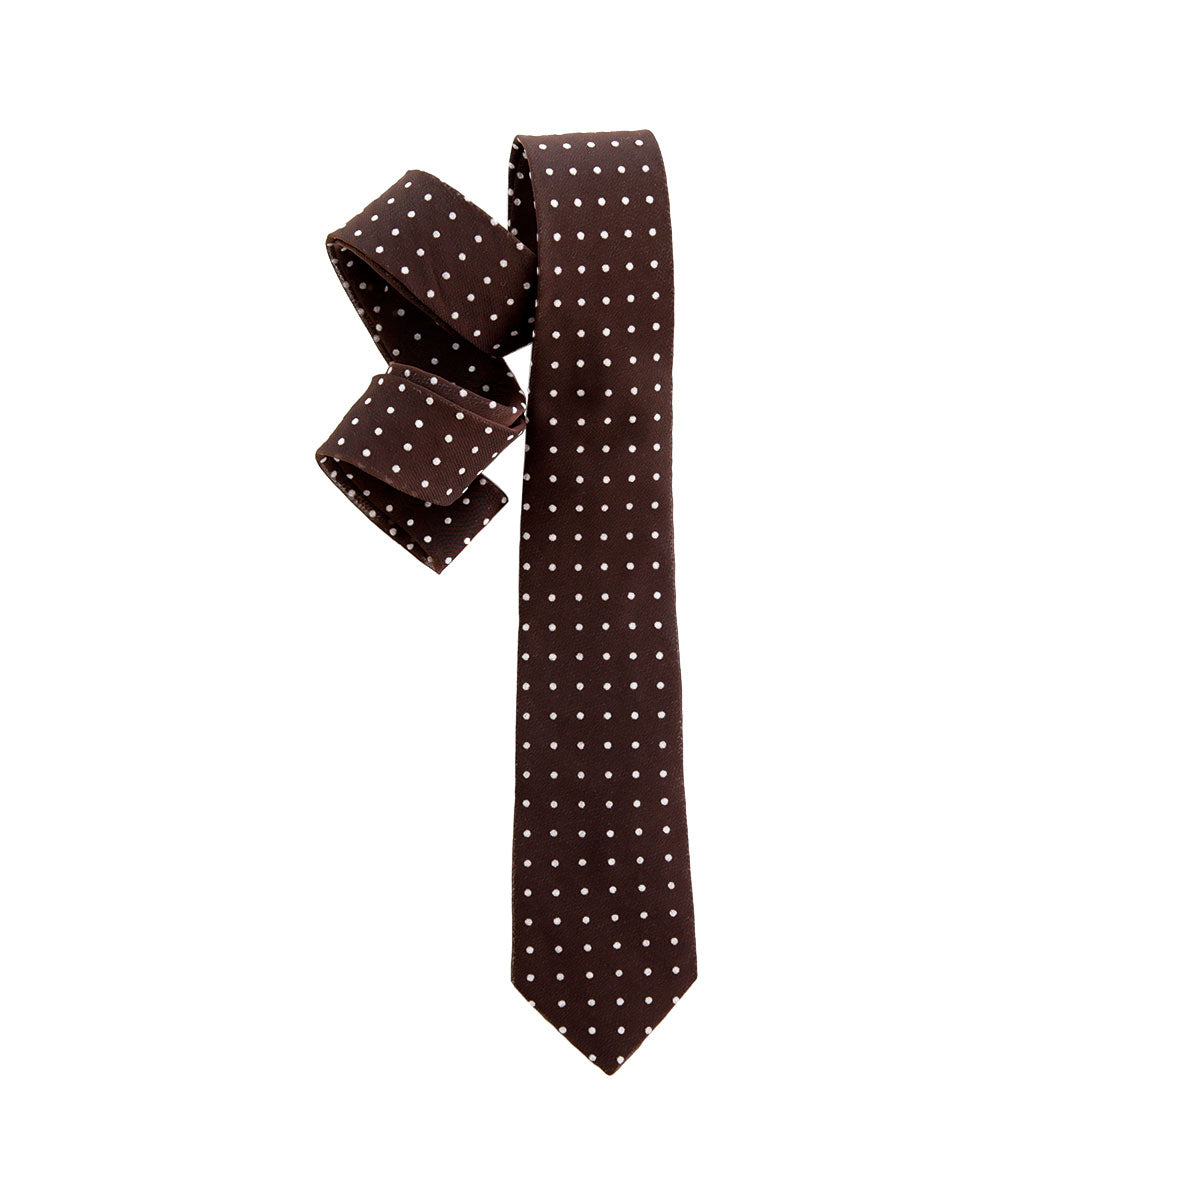 The Fritz Necktie